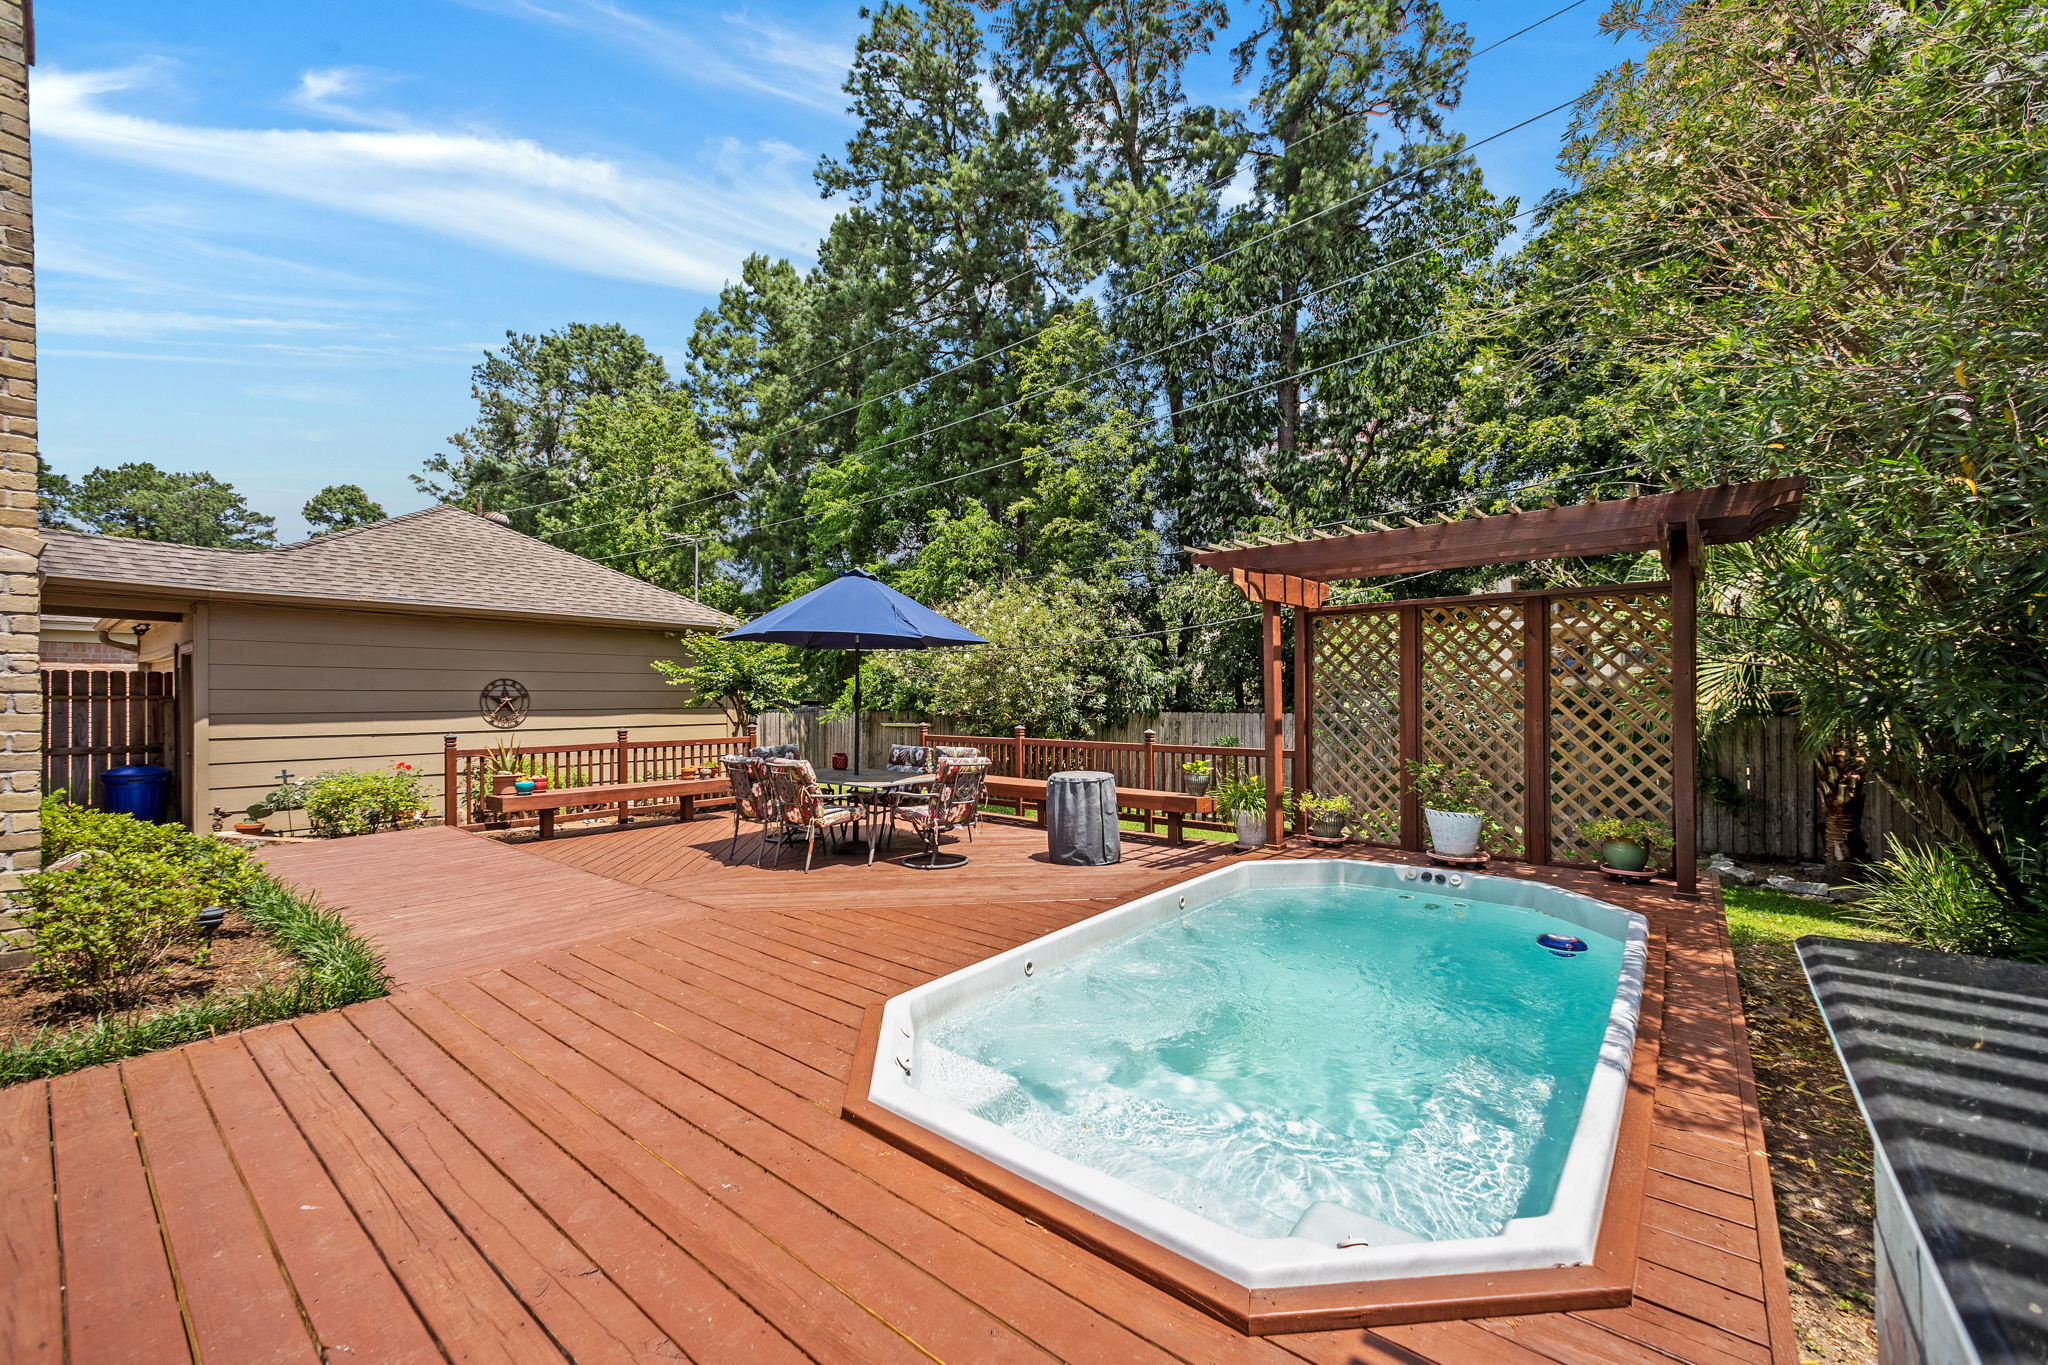 Deck and Swim spa